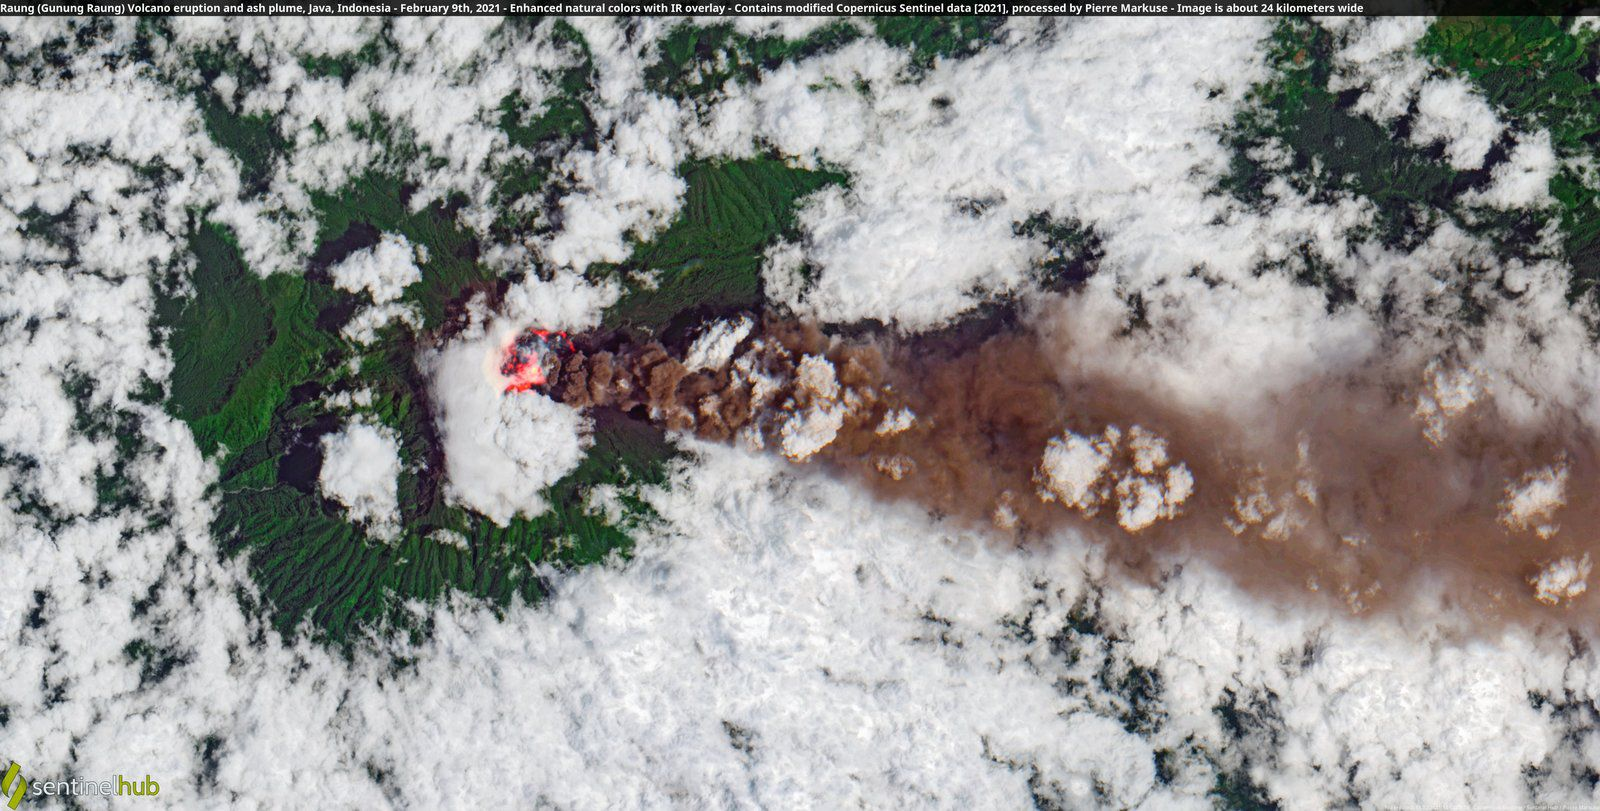 Raung - hot spots in the crater and ash plume from 02.09.2021 - image Sentinel2 / enhanced nat. colors + IR overlay / by Pierre Markuse - one click to enlarge